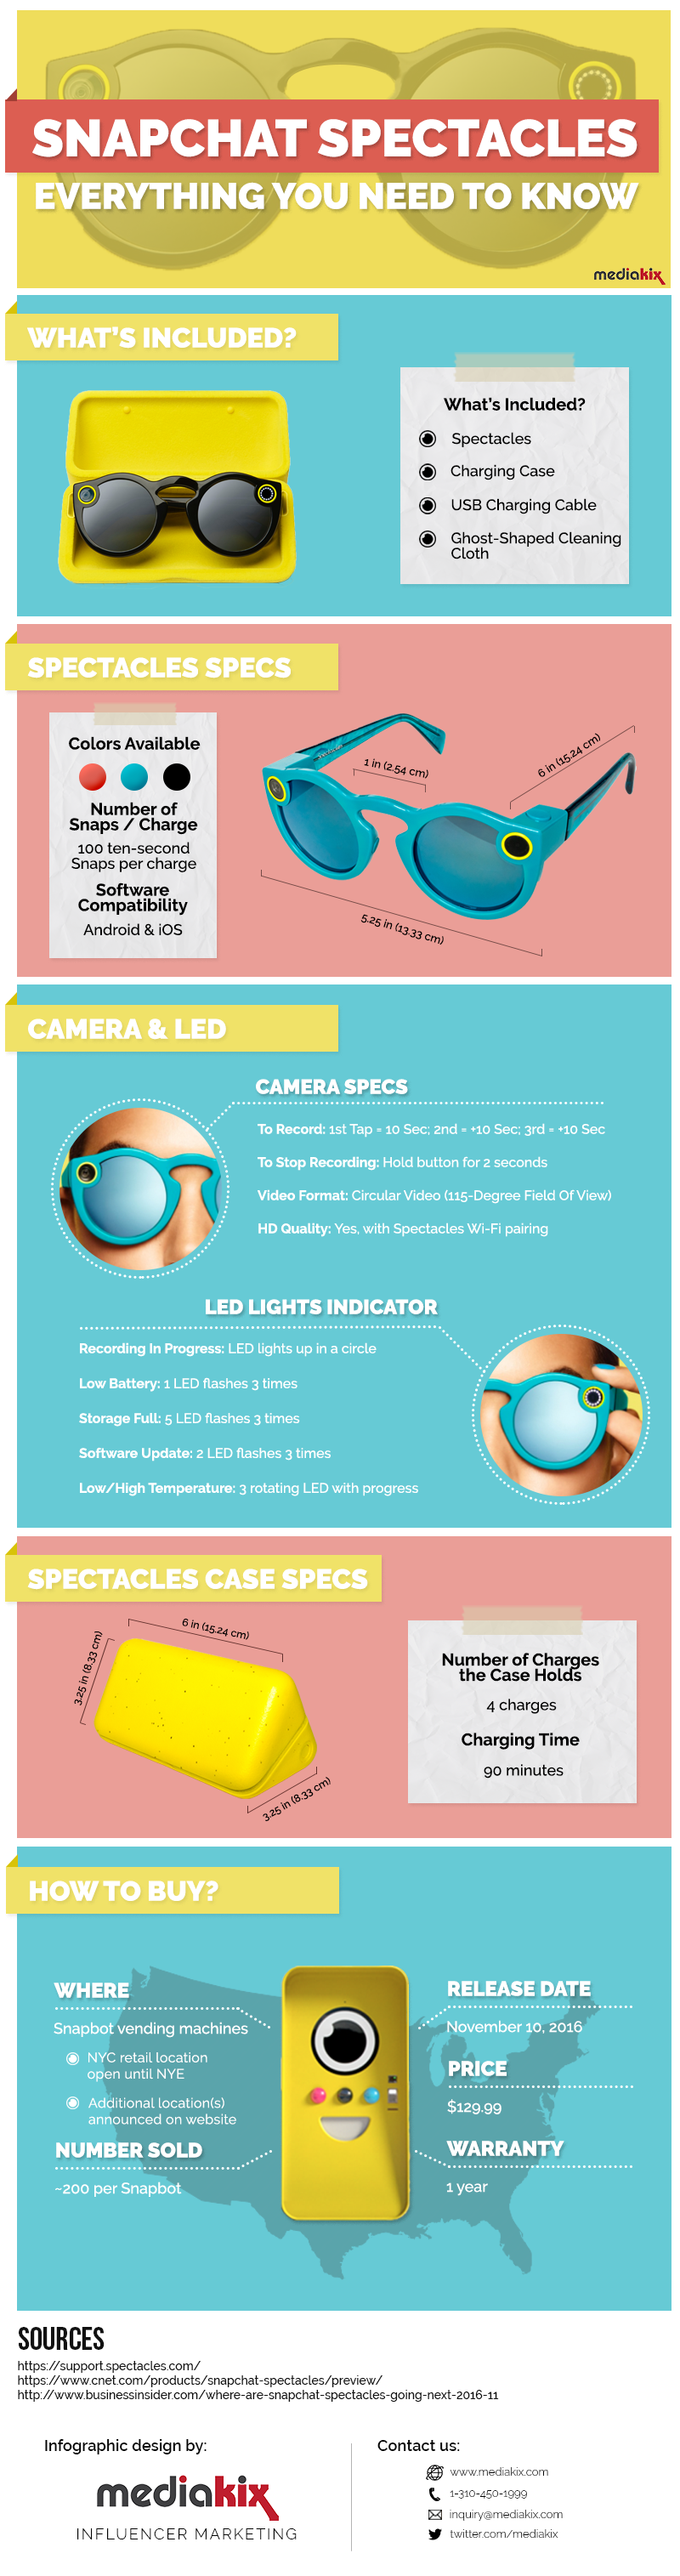 132881db37 Here s Everything You Need to Know About Snapchat s Spectacles Glasses